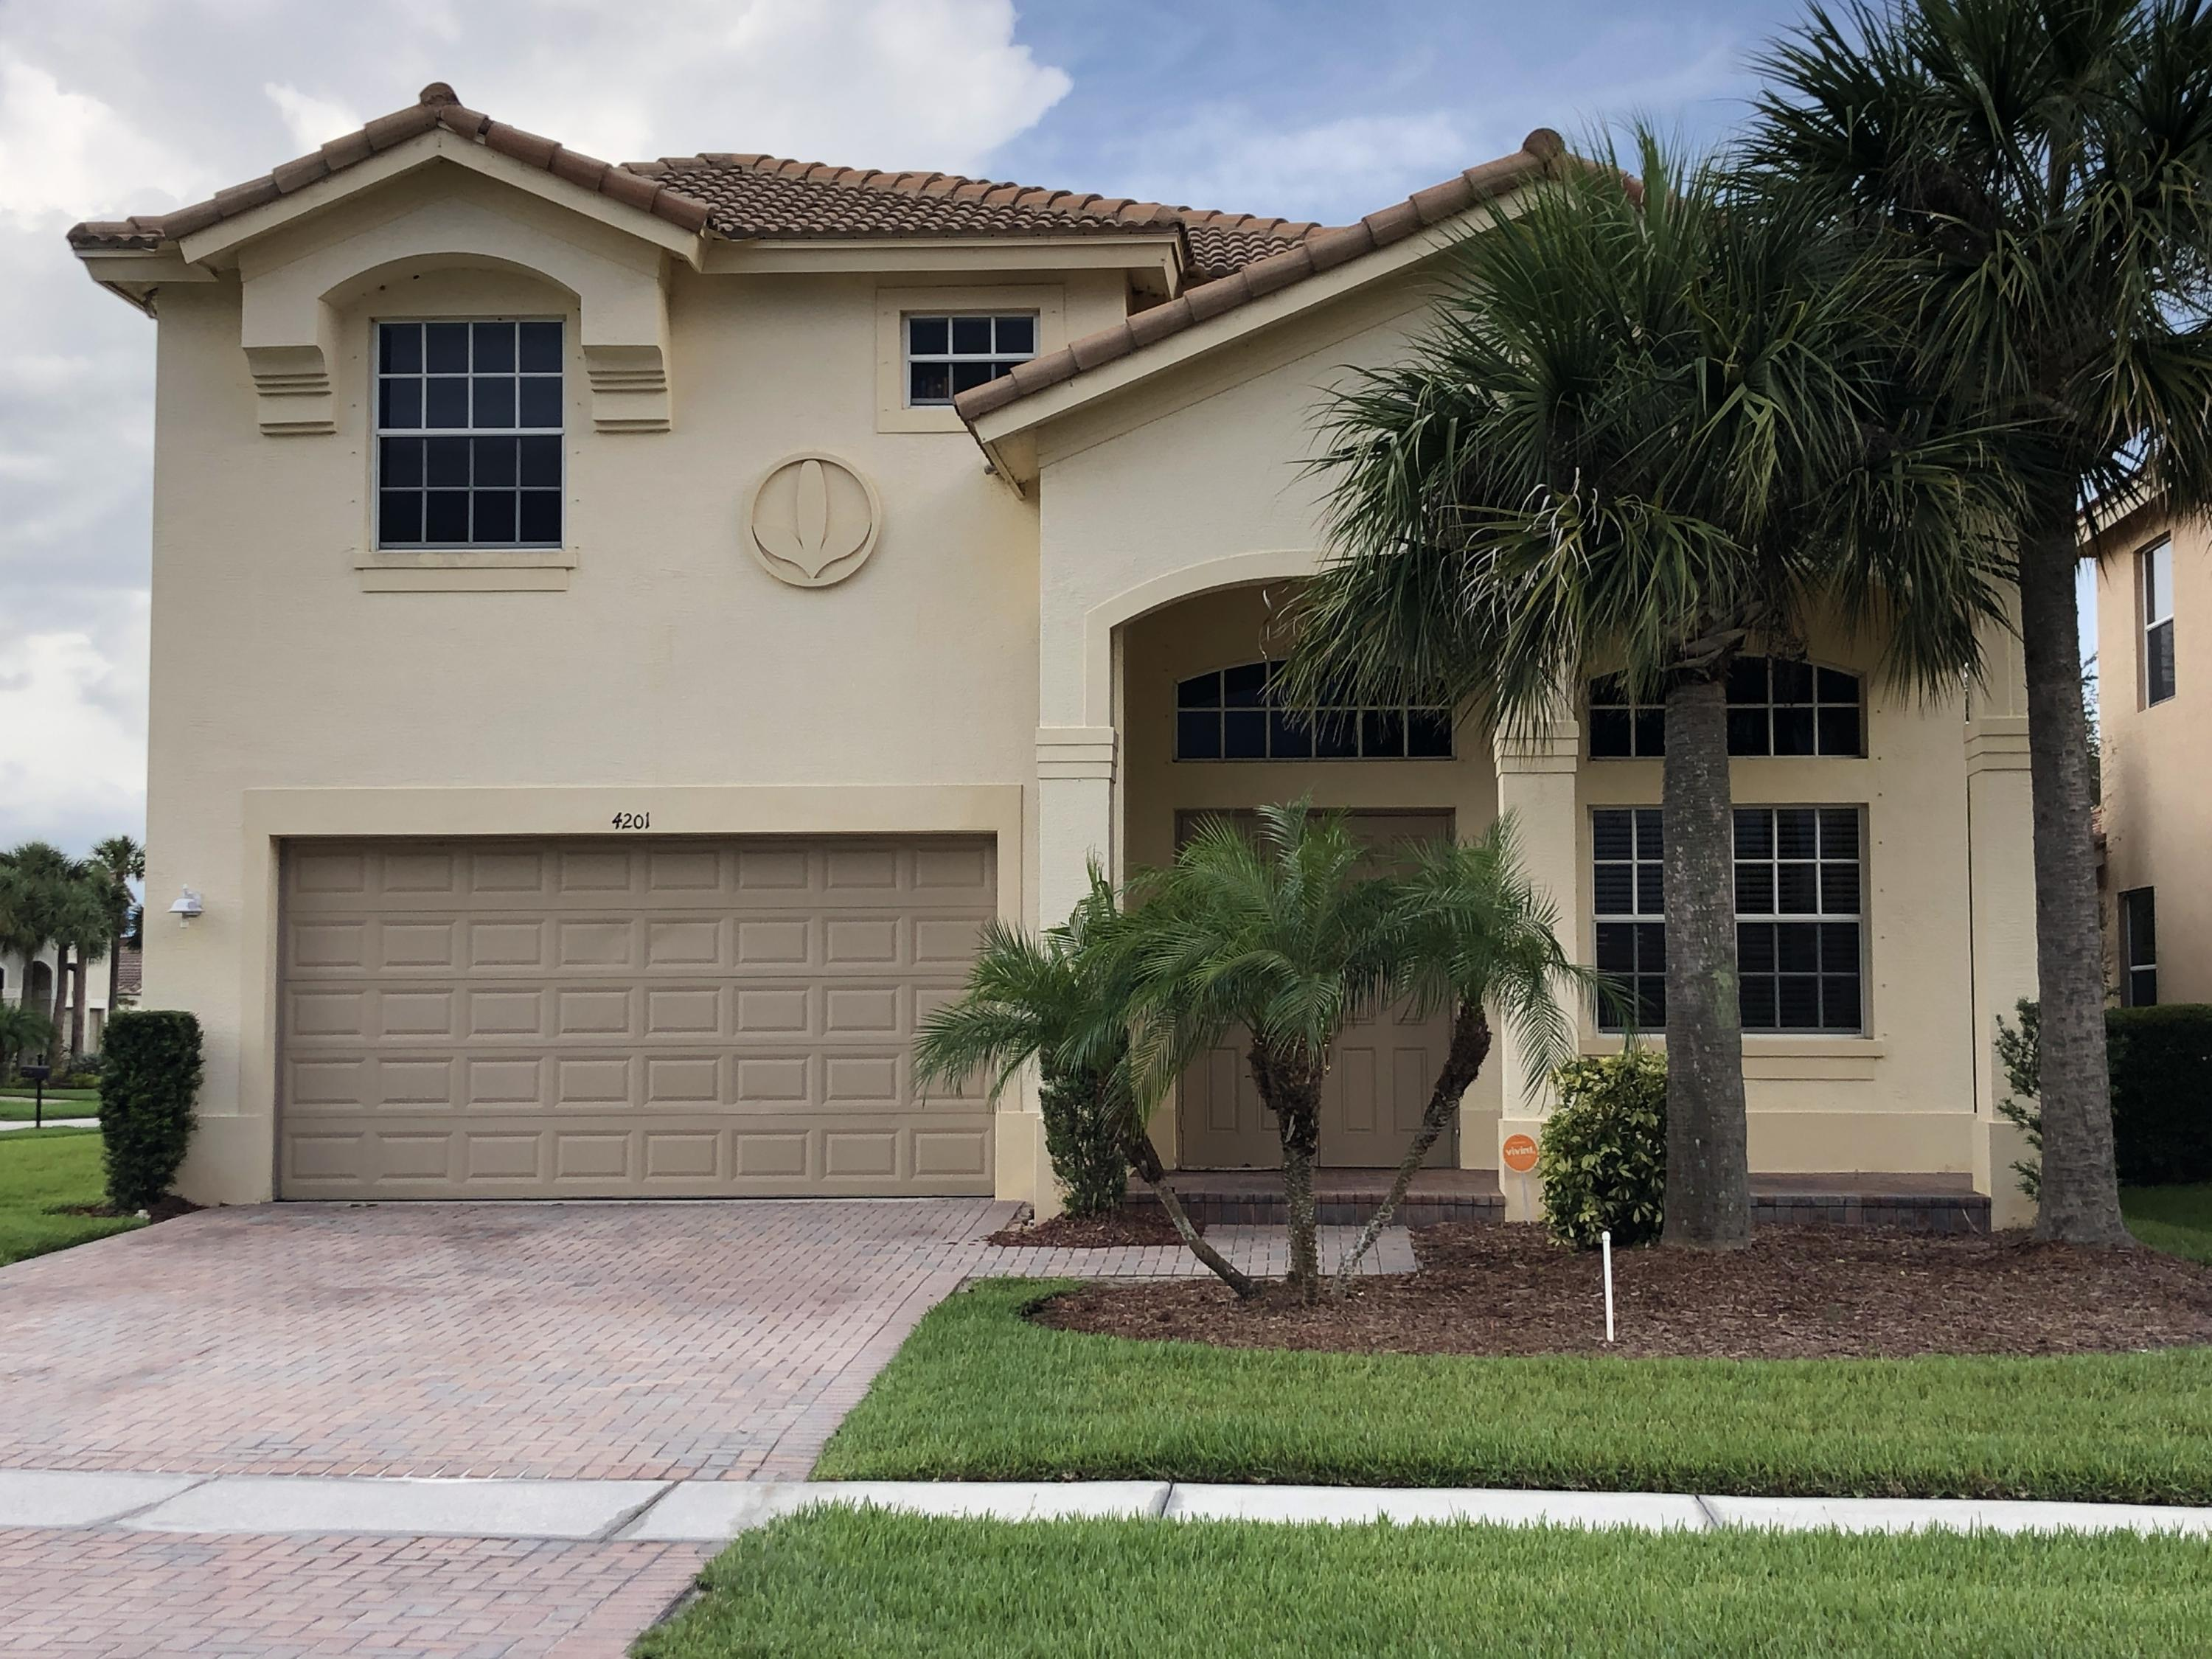 Photo of home for sale at 4201 Troon Place, Fort Pierce FL